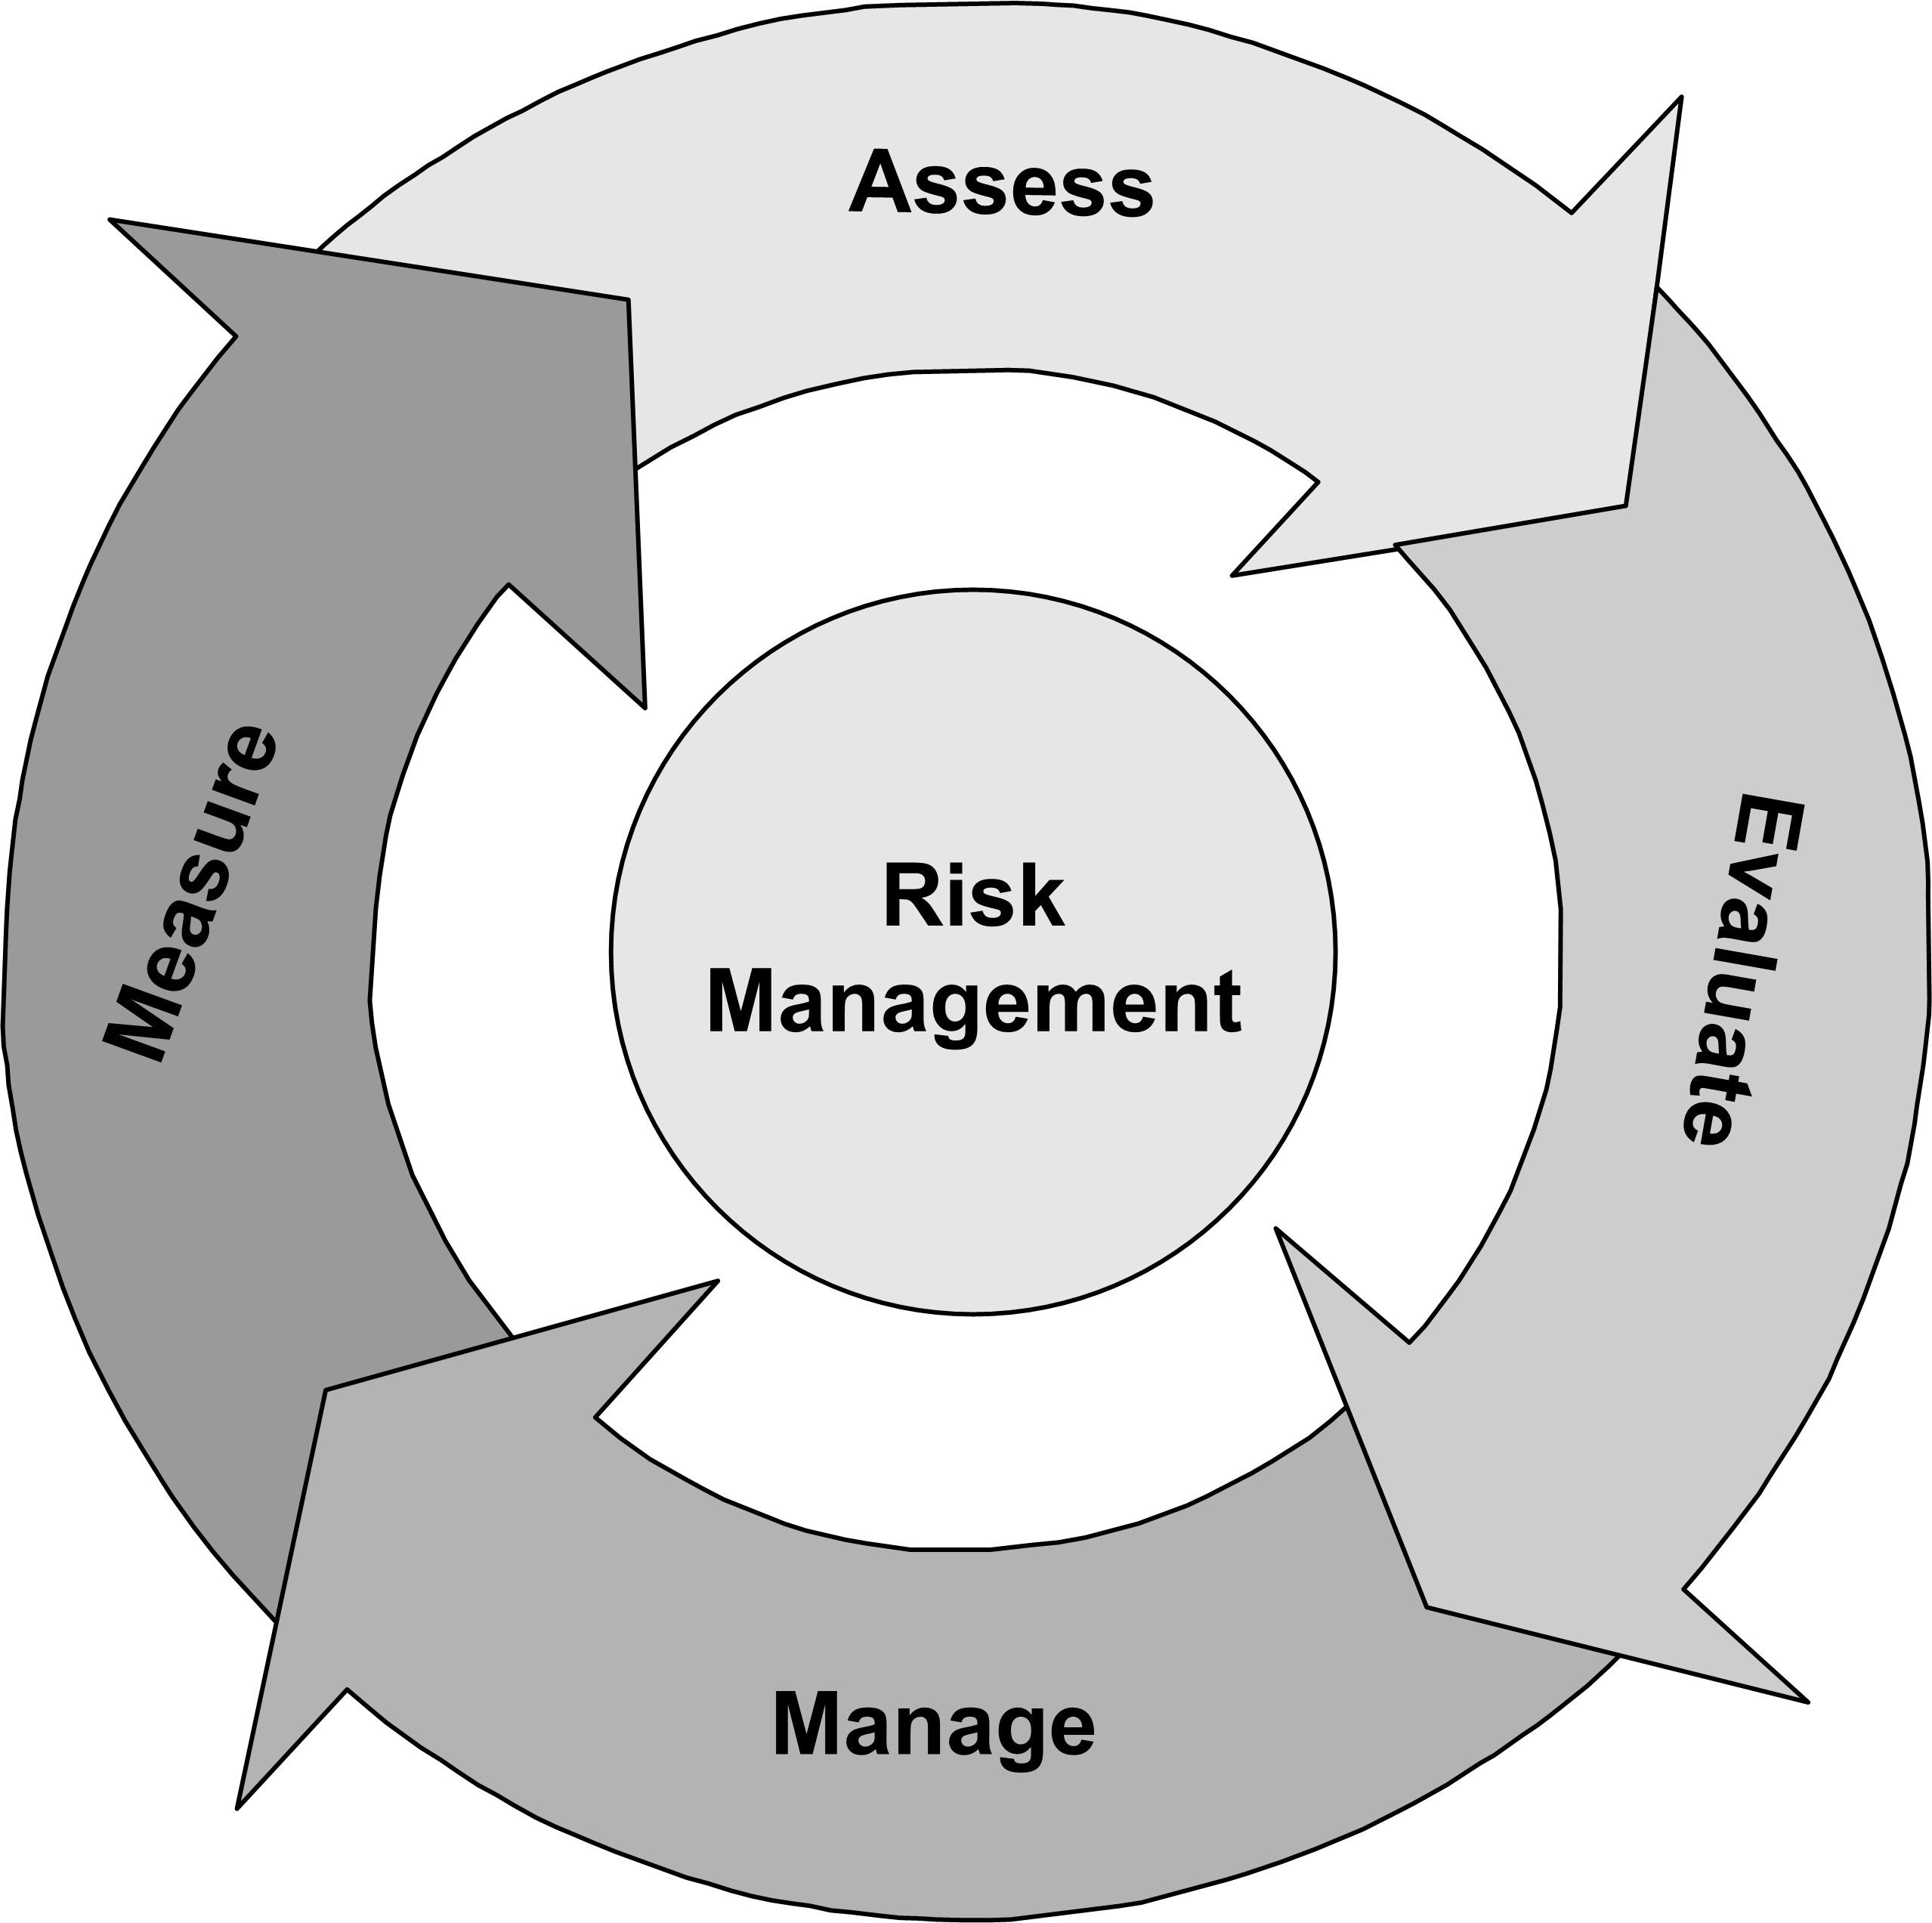 Provide An Accurate Definition And Explanation Of A Risk